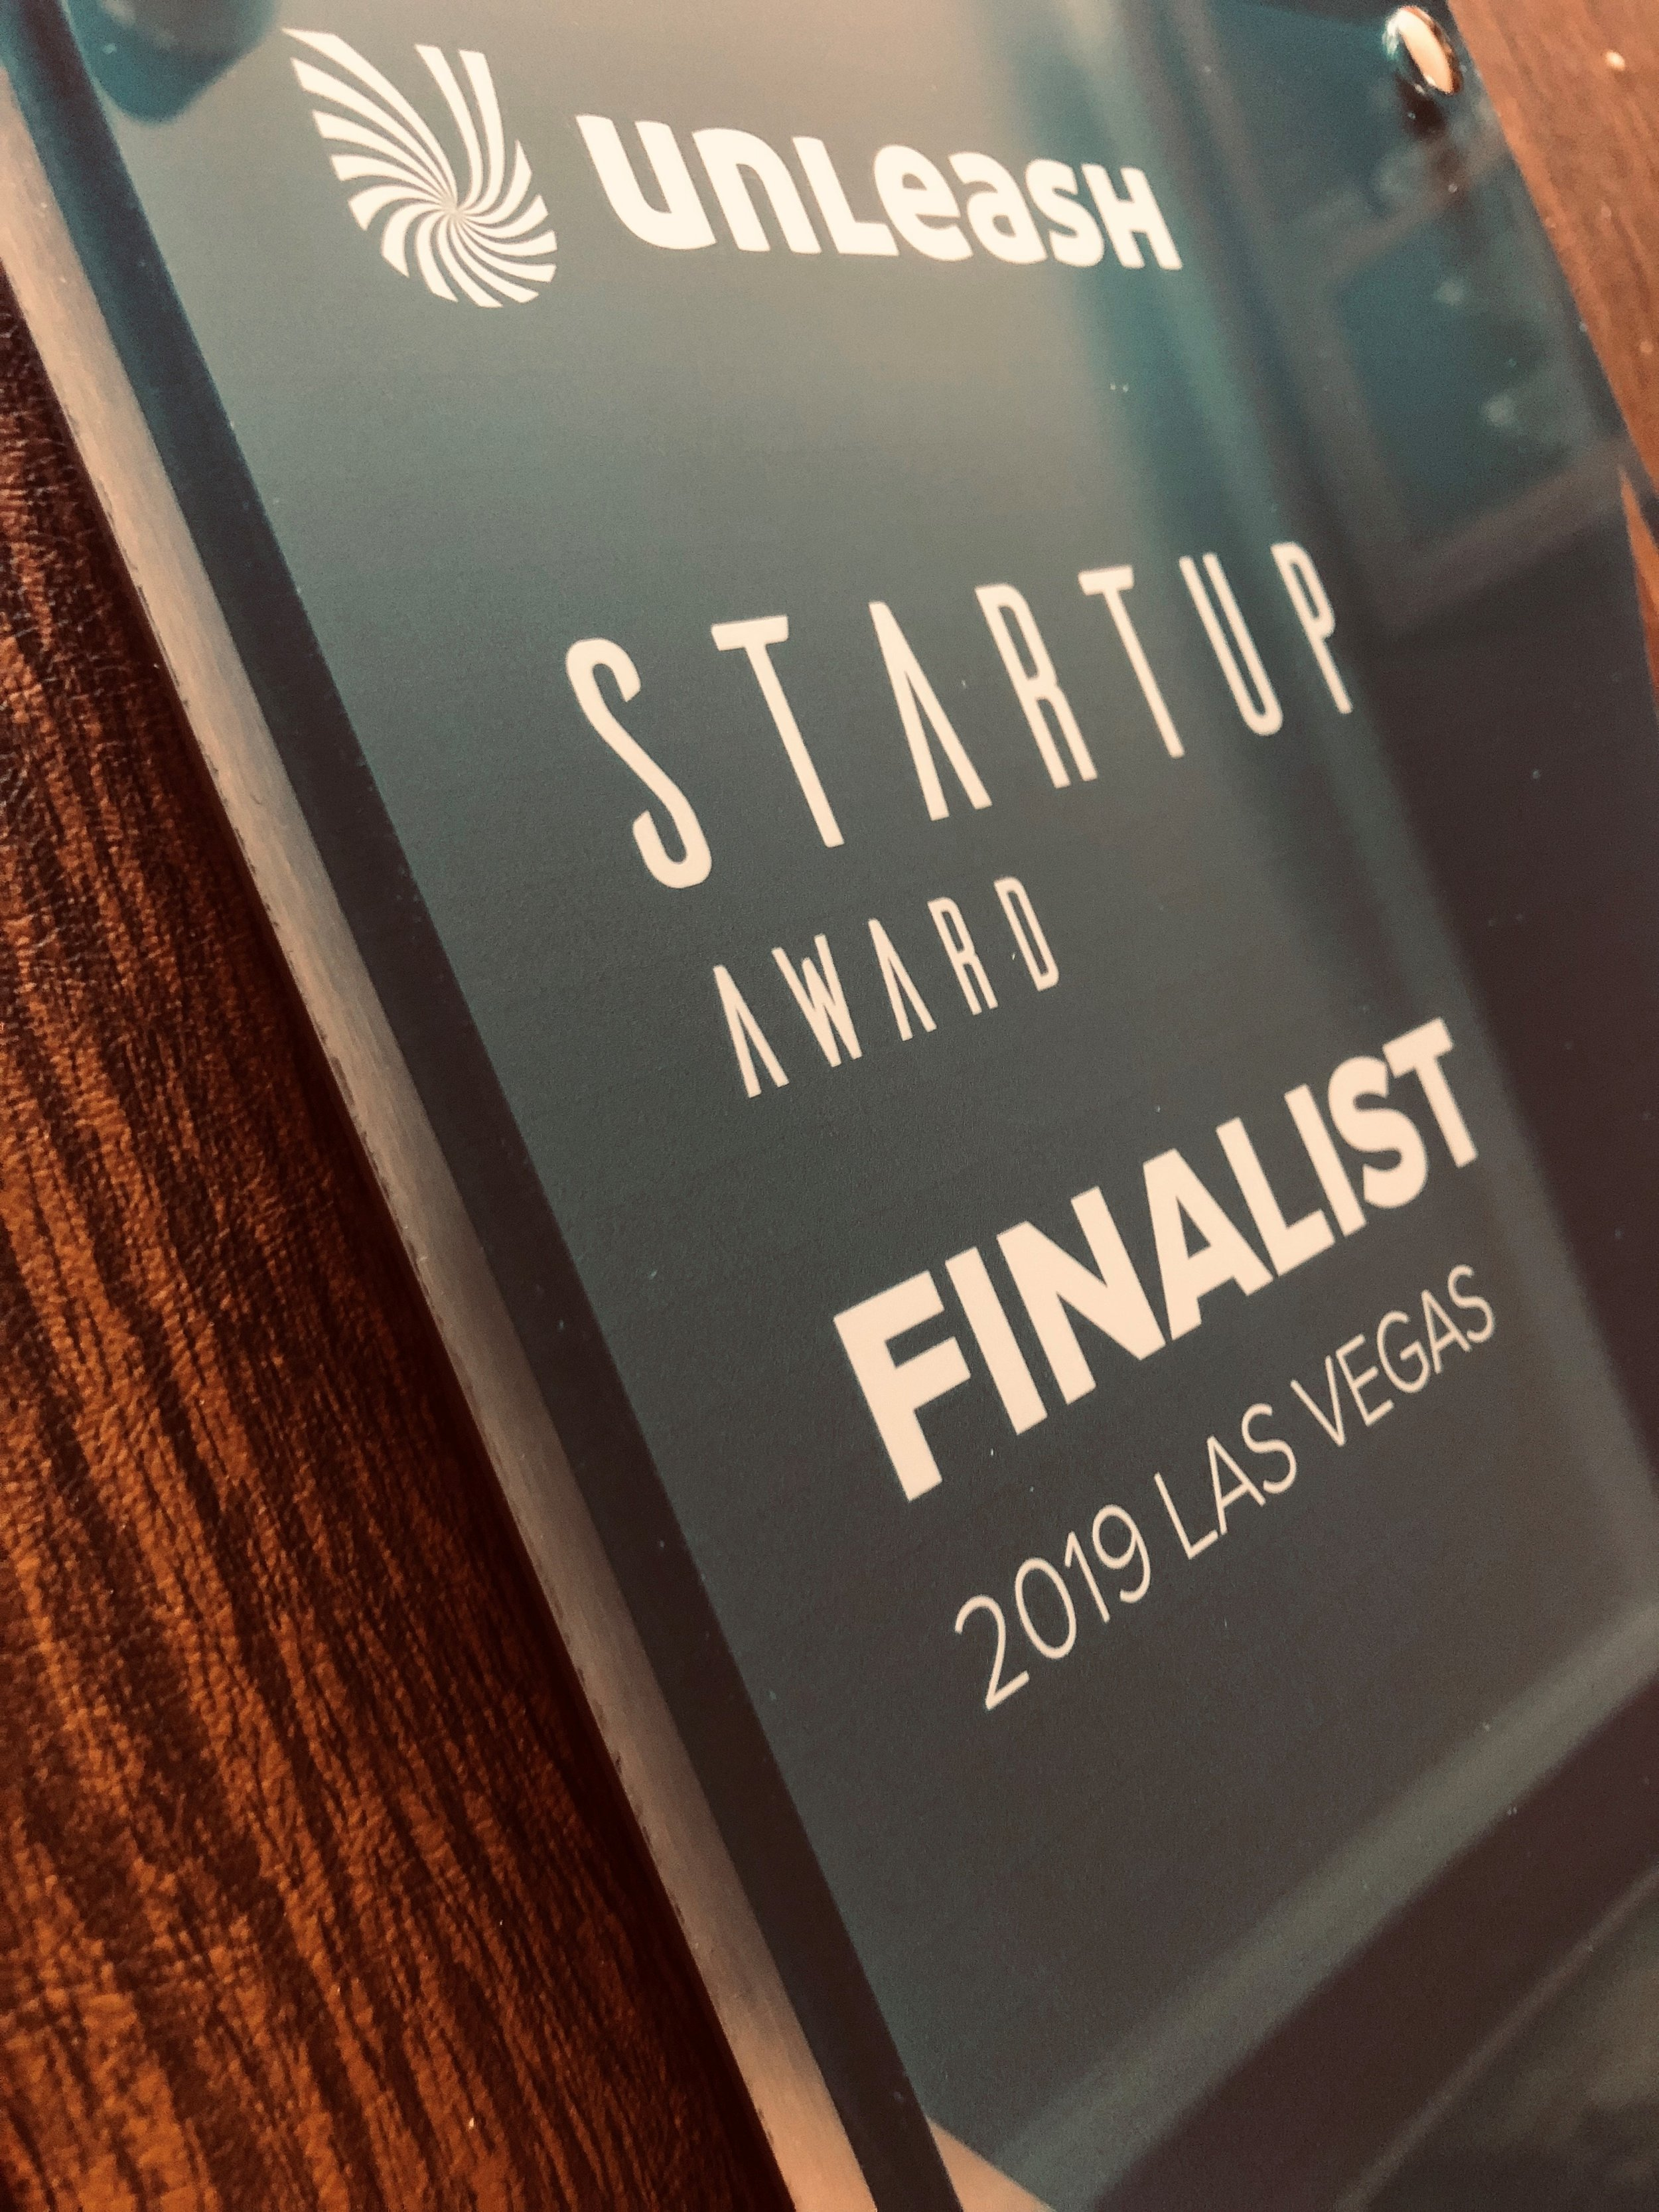 FINALIST AWARD - We are glad to announce our Startup Finalist award. We would also like to thank everyone who came to our booth and learned more about MeaningBot. Stay tuned if you entered any of the raffles, the winner will be emailed May 28th, 2019.